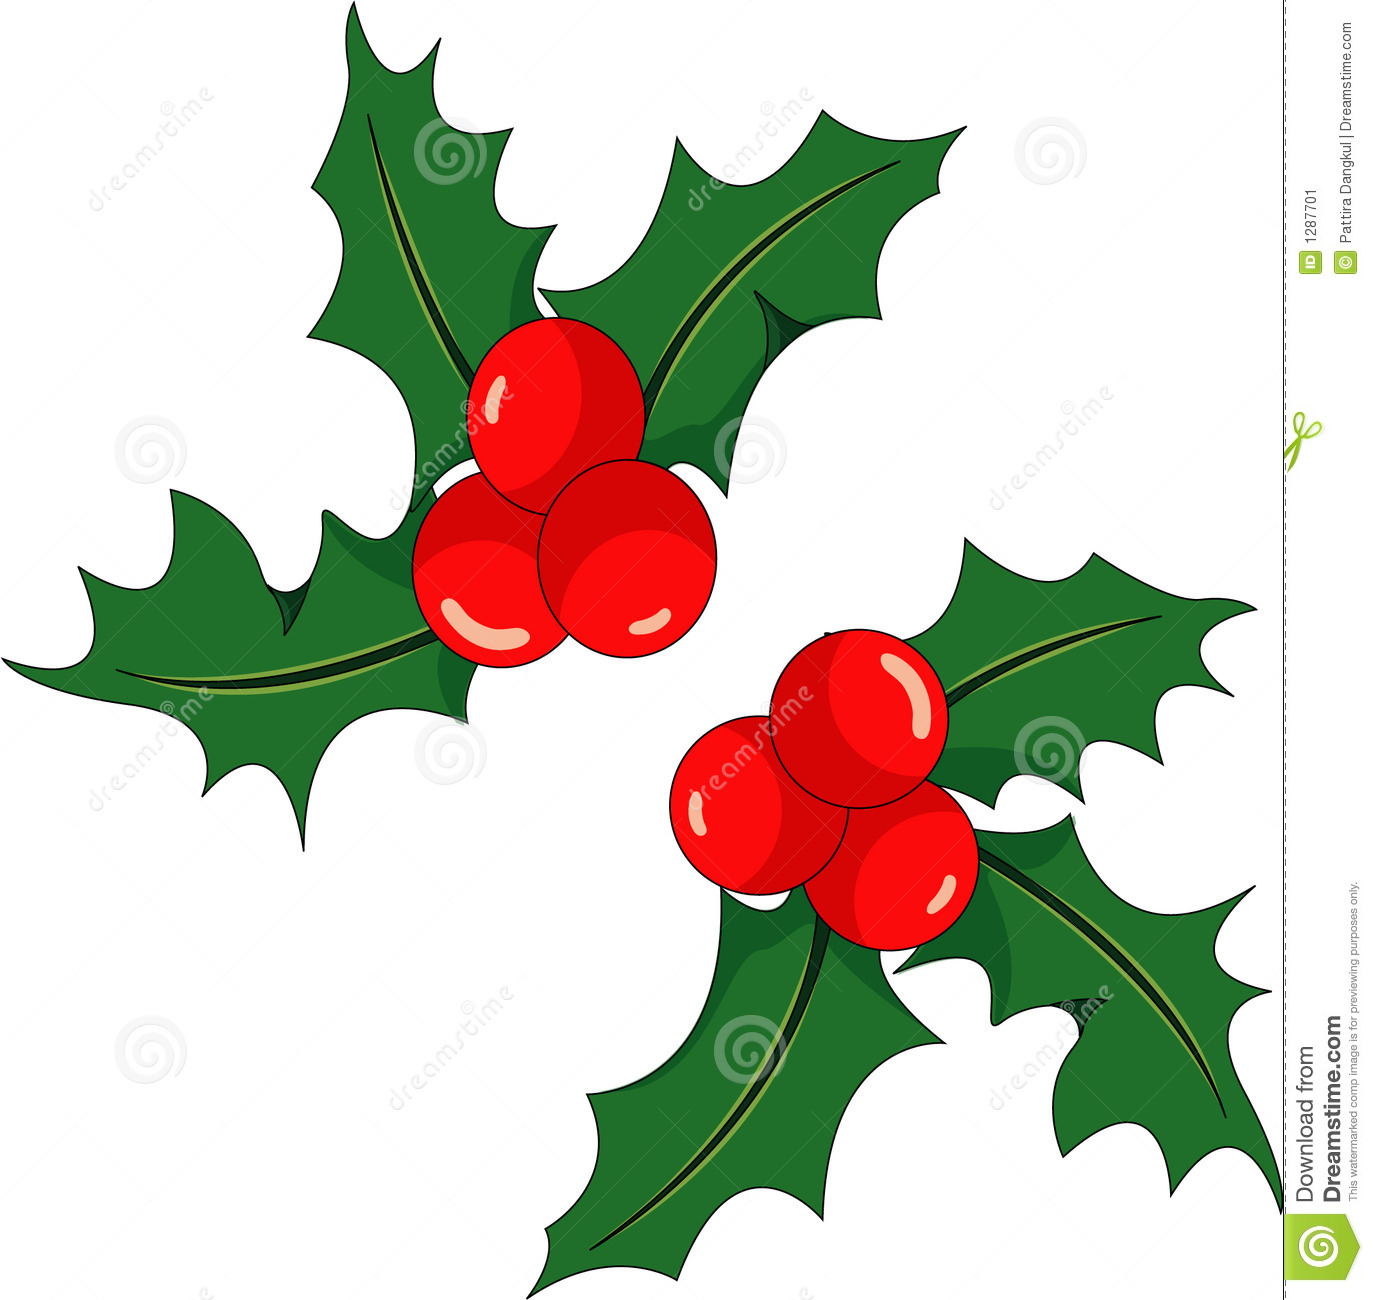 Christmas holly stock image image 1287701 for Holl image